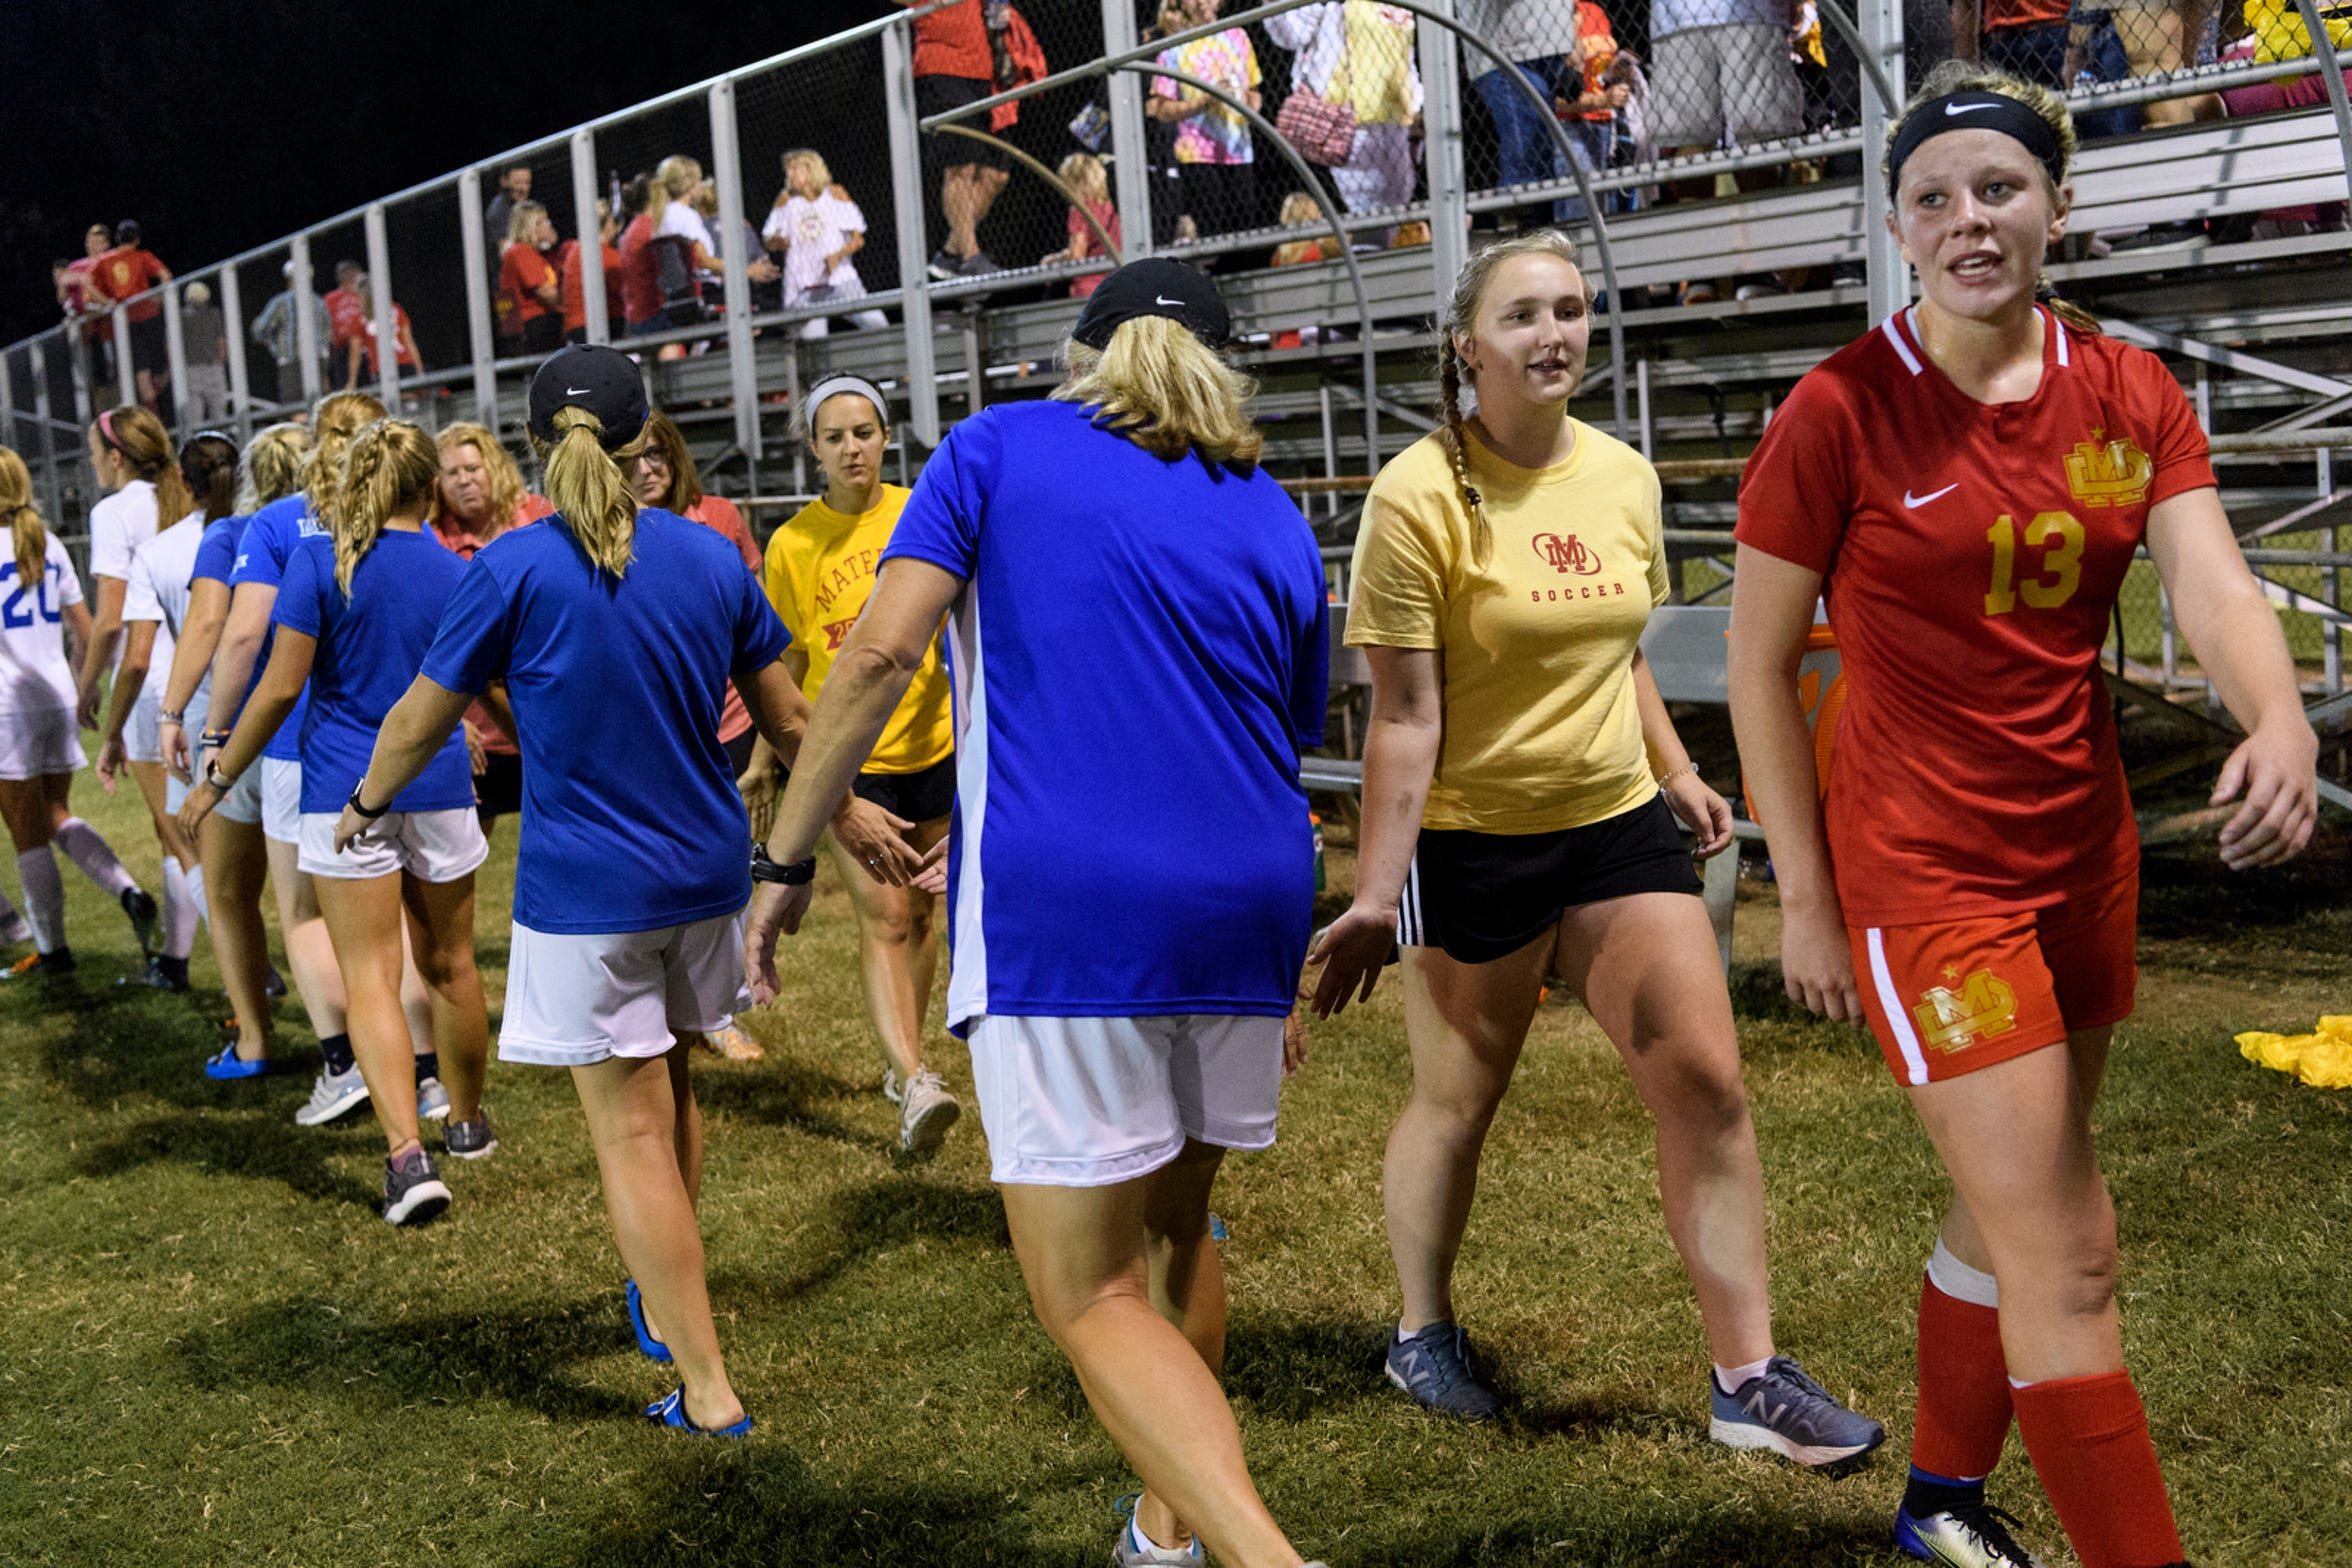 Mater Dei's Katherine Hahn (13), right, and Anna Bury (10), second from right, congratulate the Memorial Tigers after losing 4-0 at the EVSC Soccer Fields in Evansville, Ind., Monday, Aug. 20, 2018.